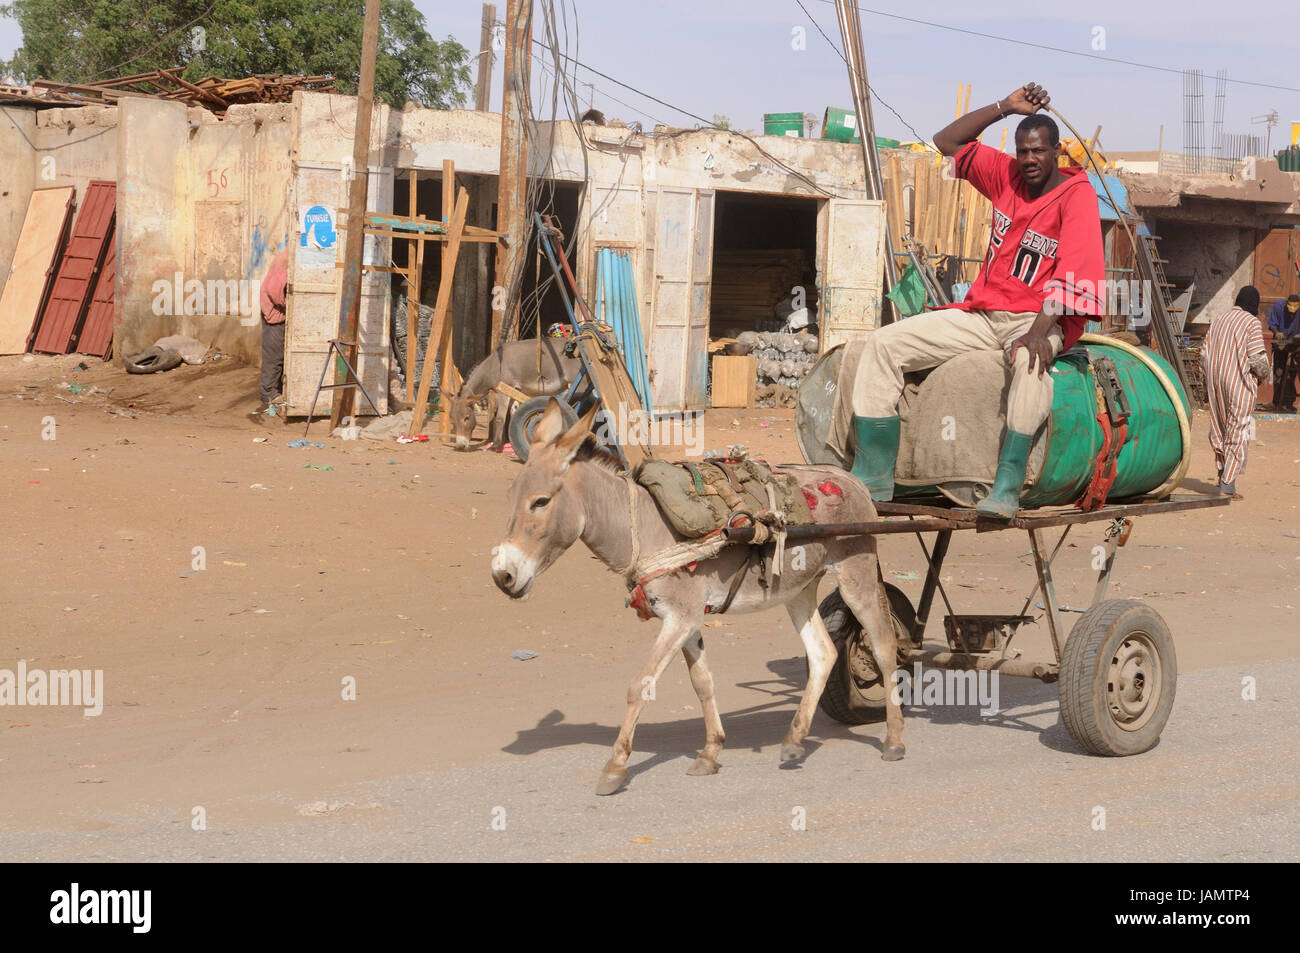 Mauritania,Nouakchott,man,donkey carts,costs transport,water barrel,no model release,Africa,West Africa,town,capital,economy,building,houses,architecture,person,locals,water Stock Photo